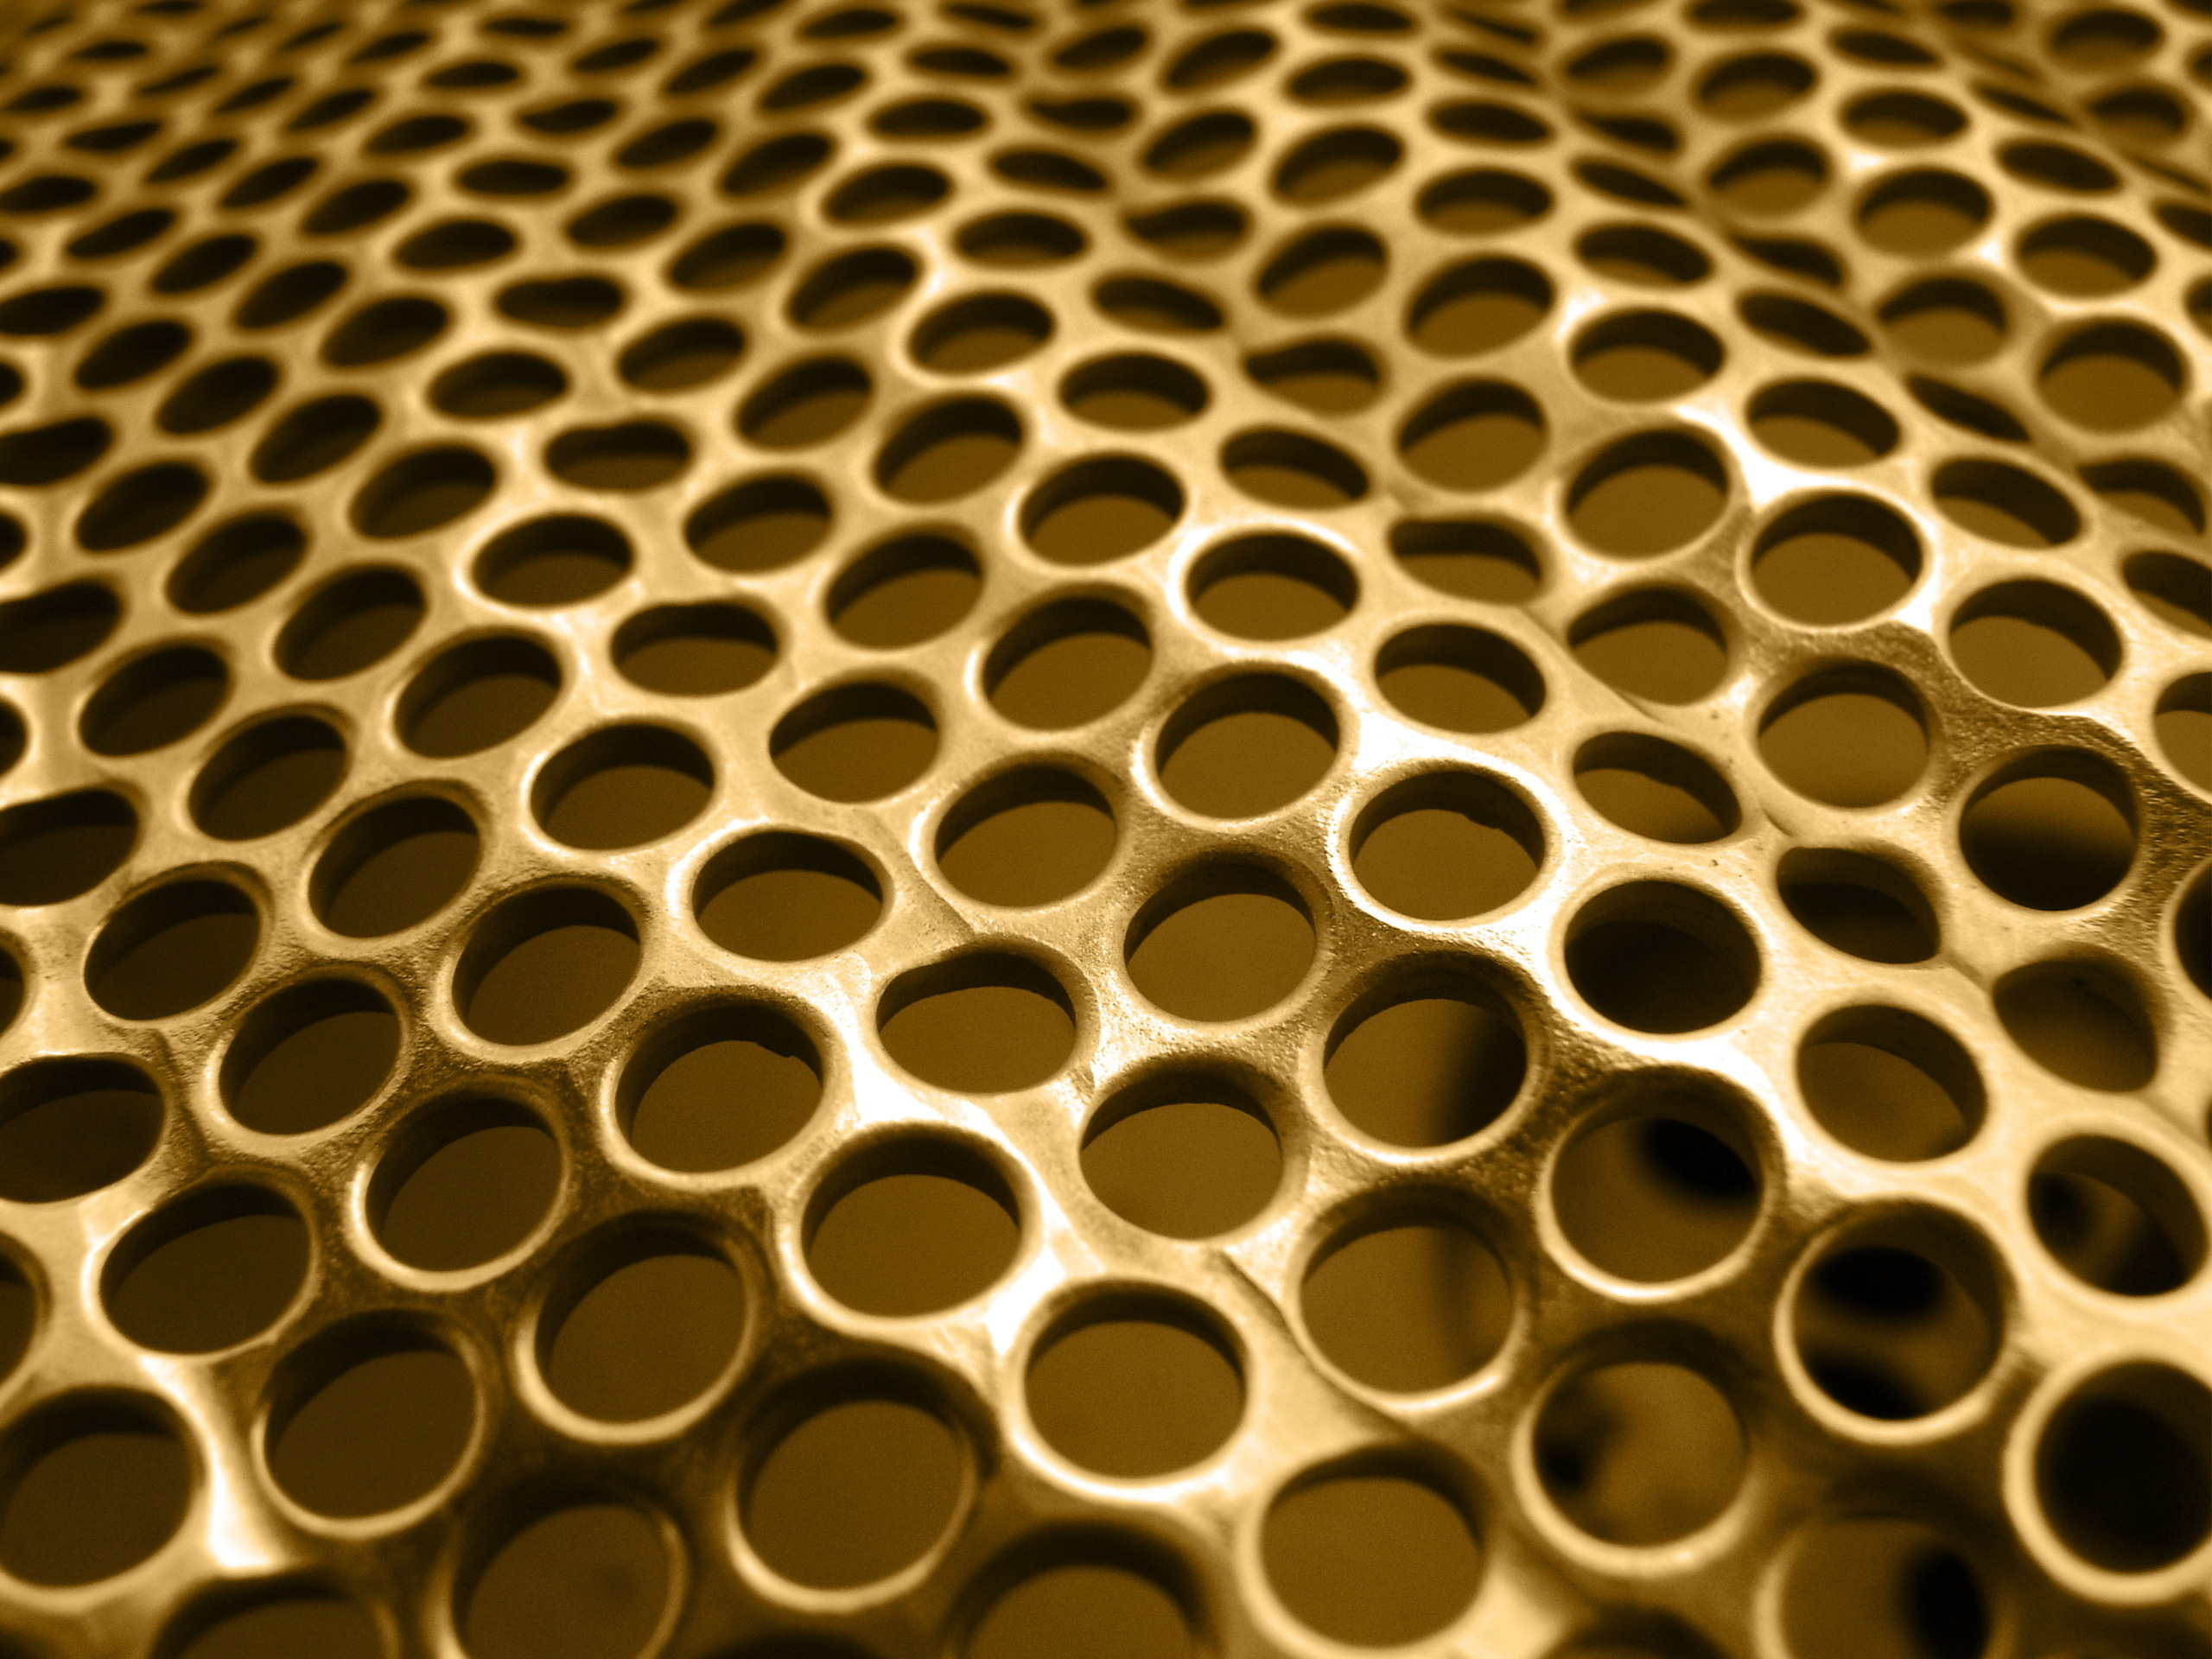 golden metal, texture, grille, download photo, background, gold metal grid texture background